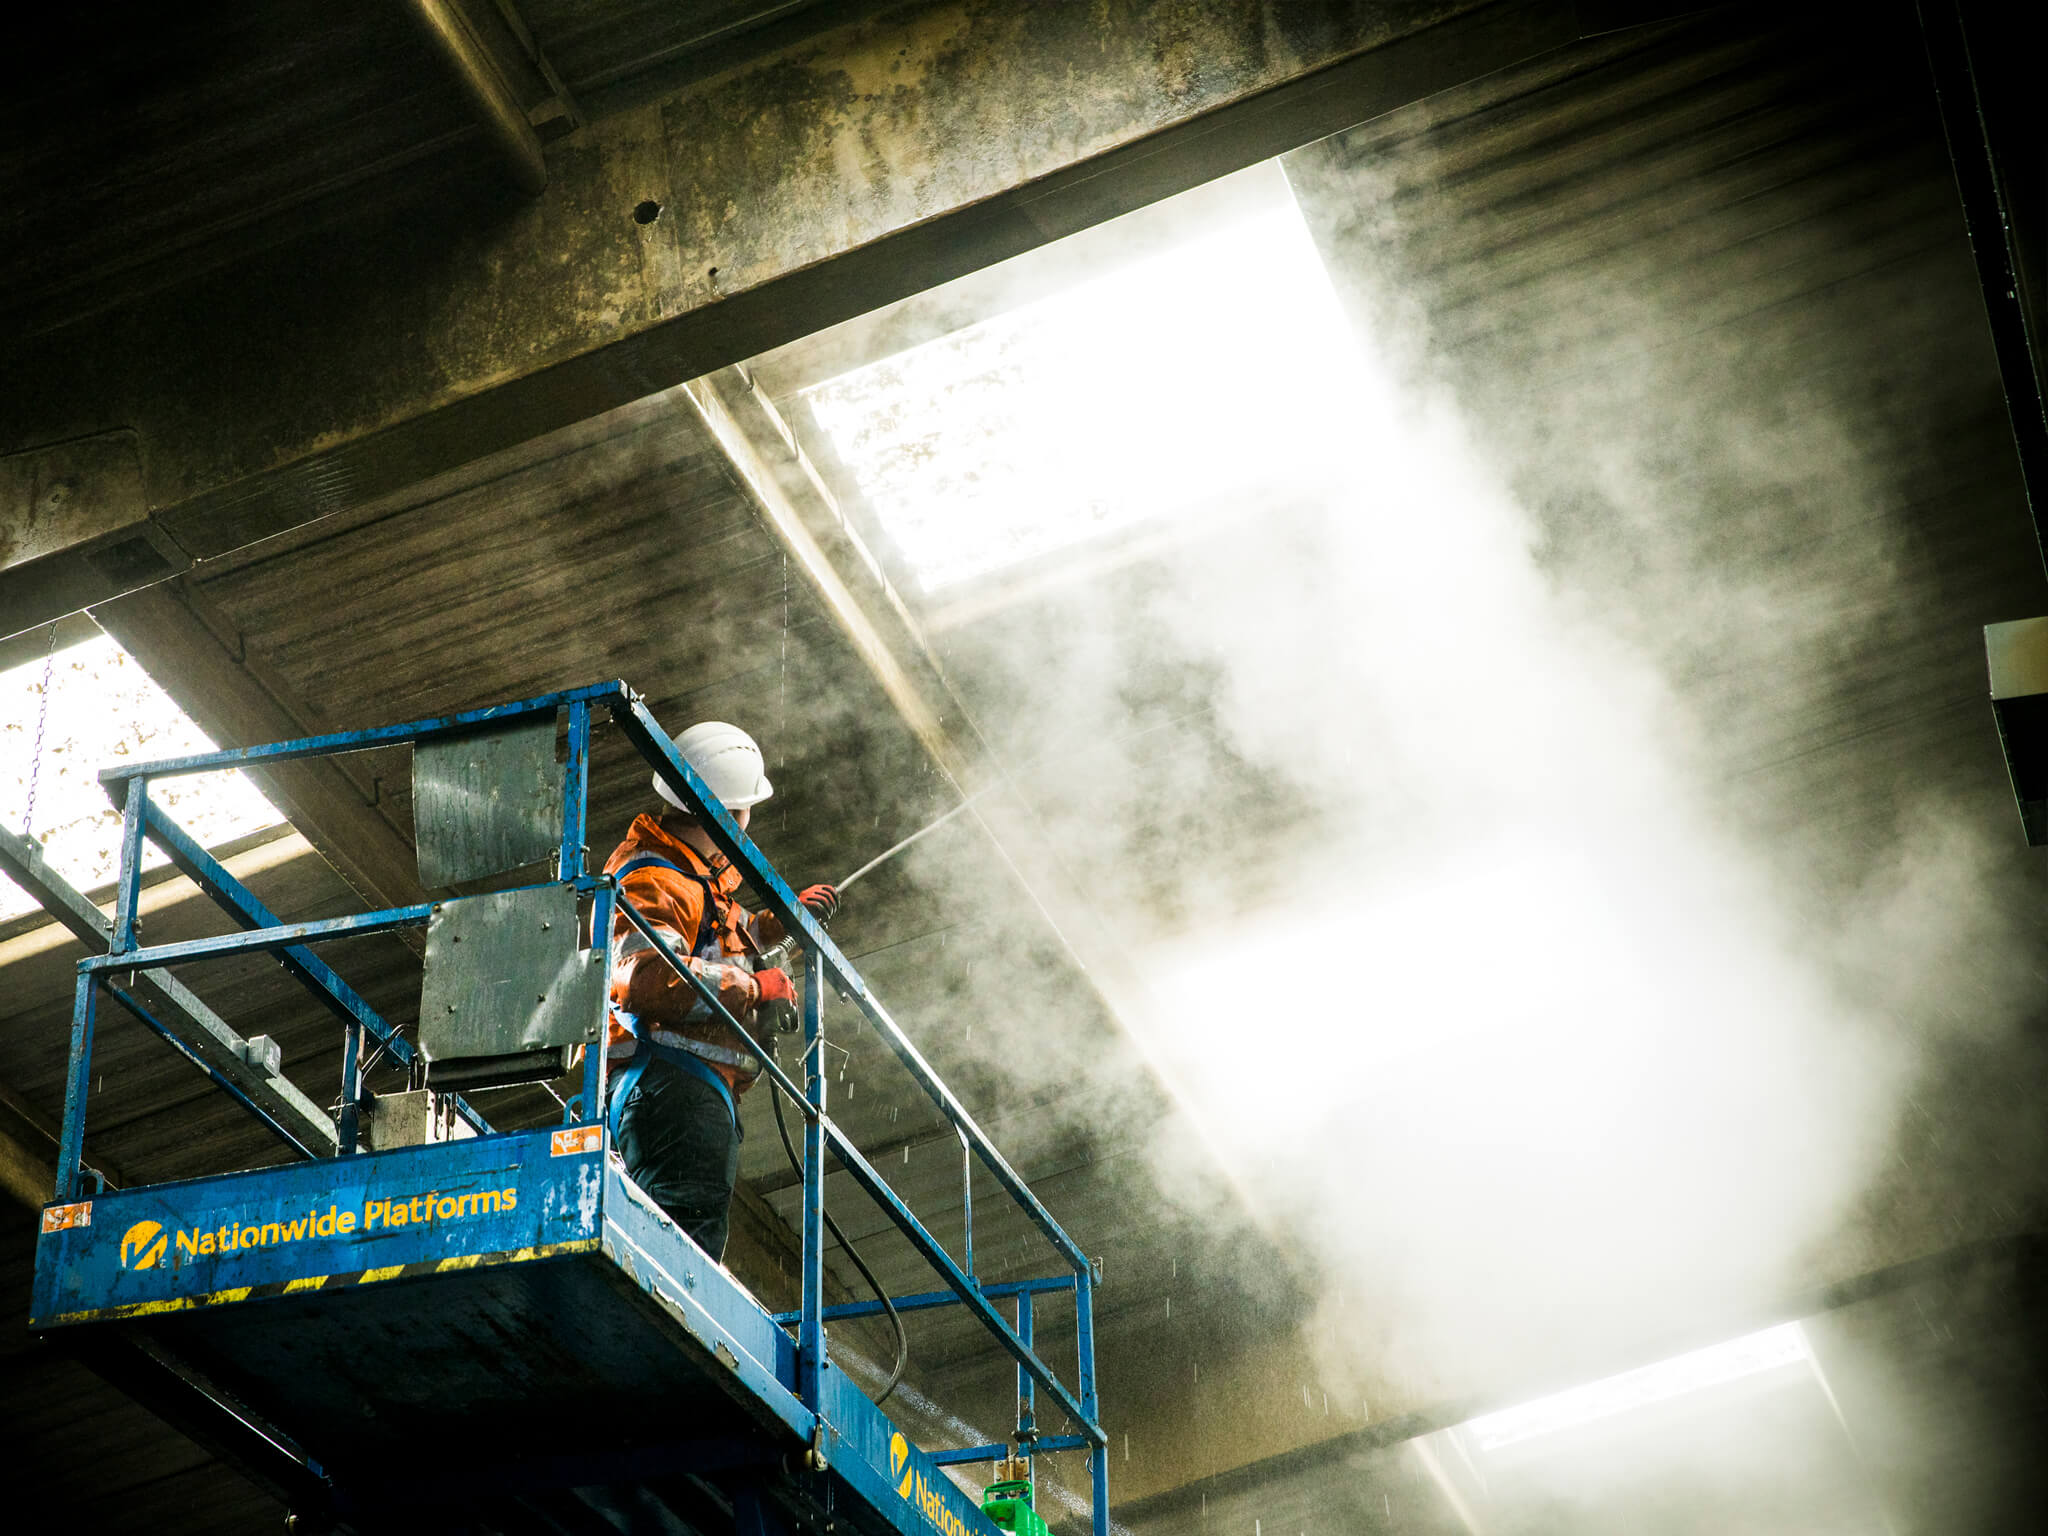 Technician on Scissor Lift Cleaning Warehouse Ceiling